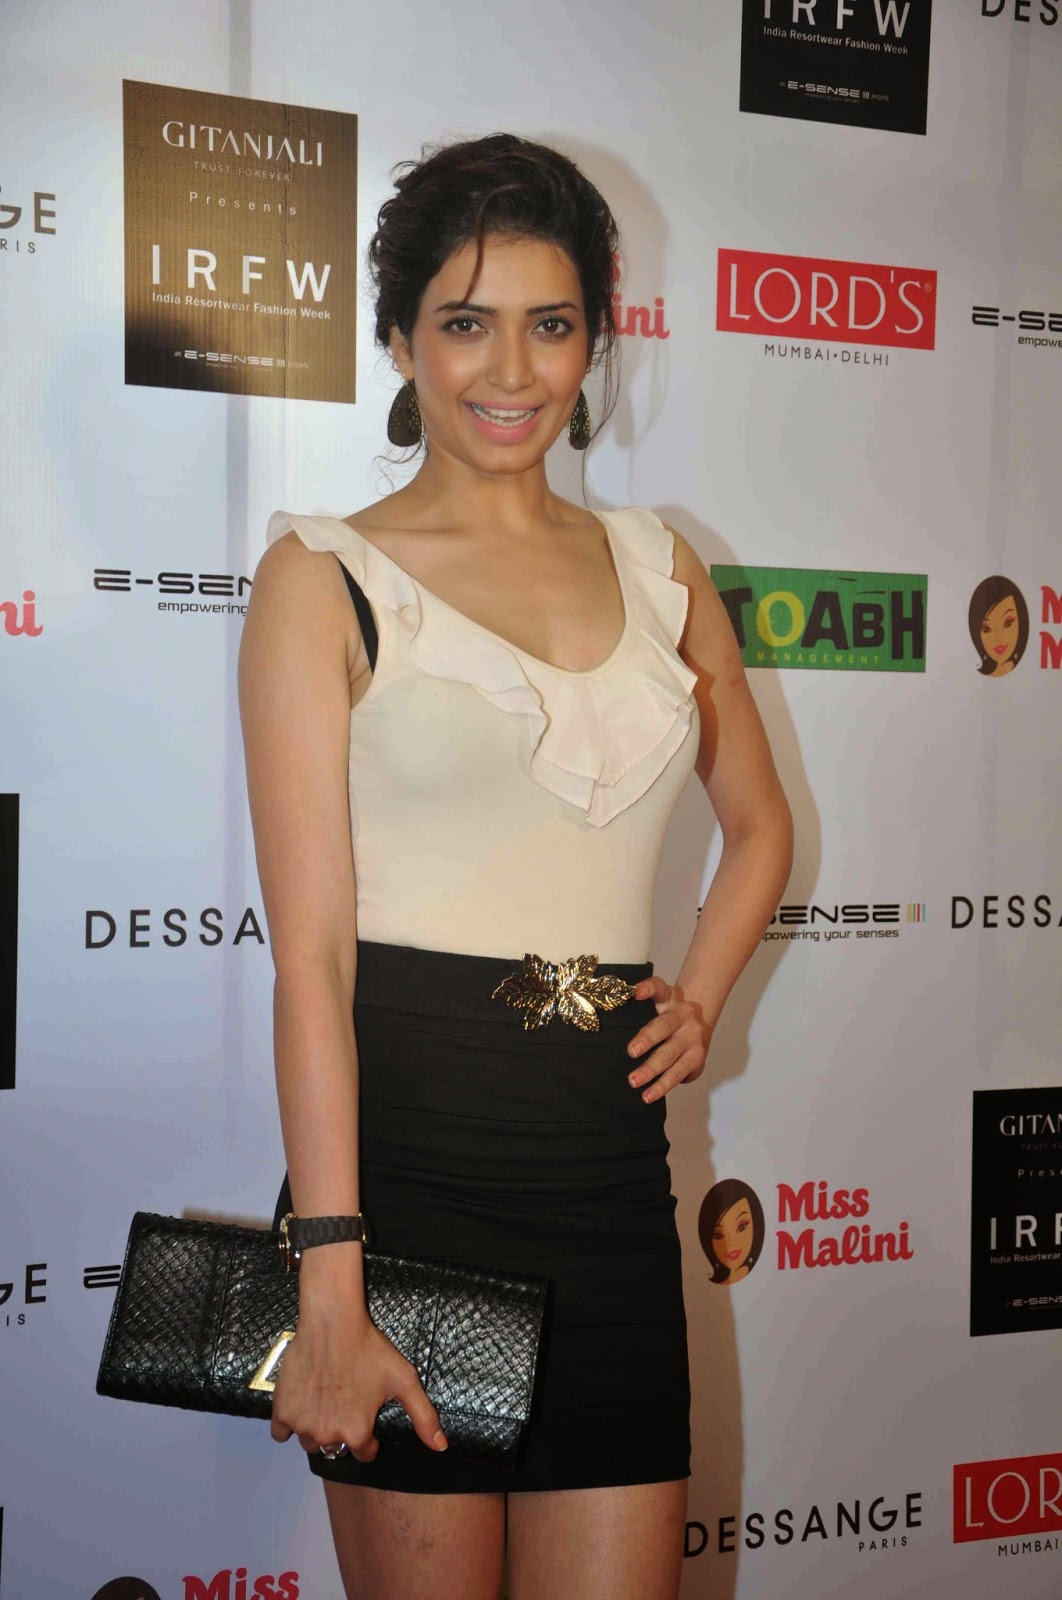 High Quality Bollywood Celebrity Pictures: Karishma Tanna